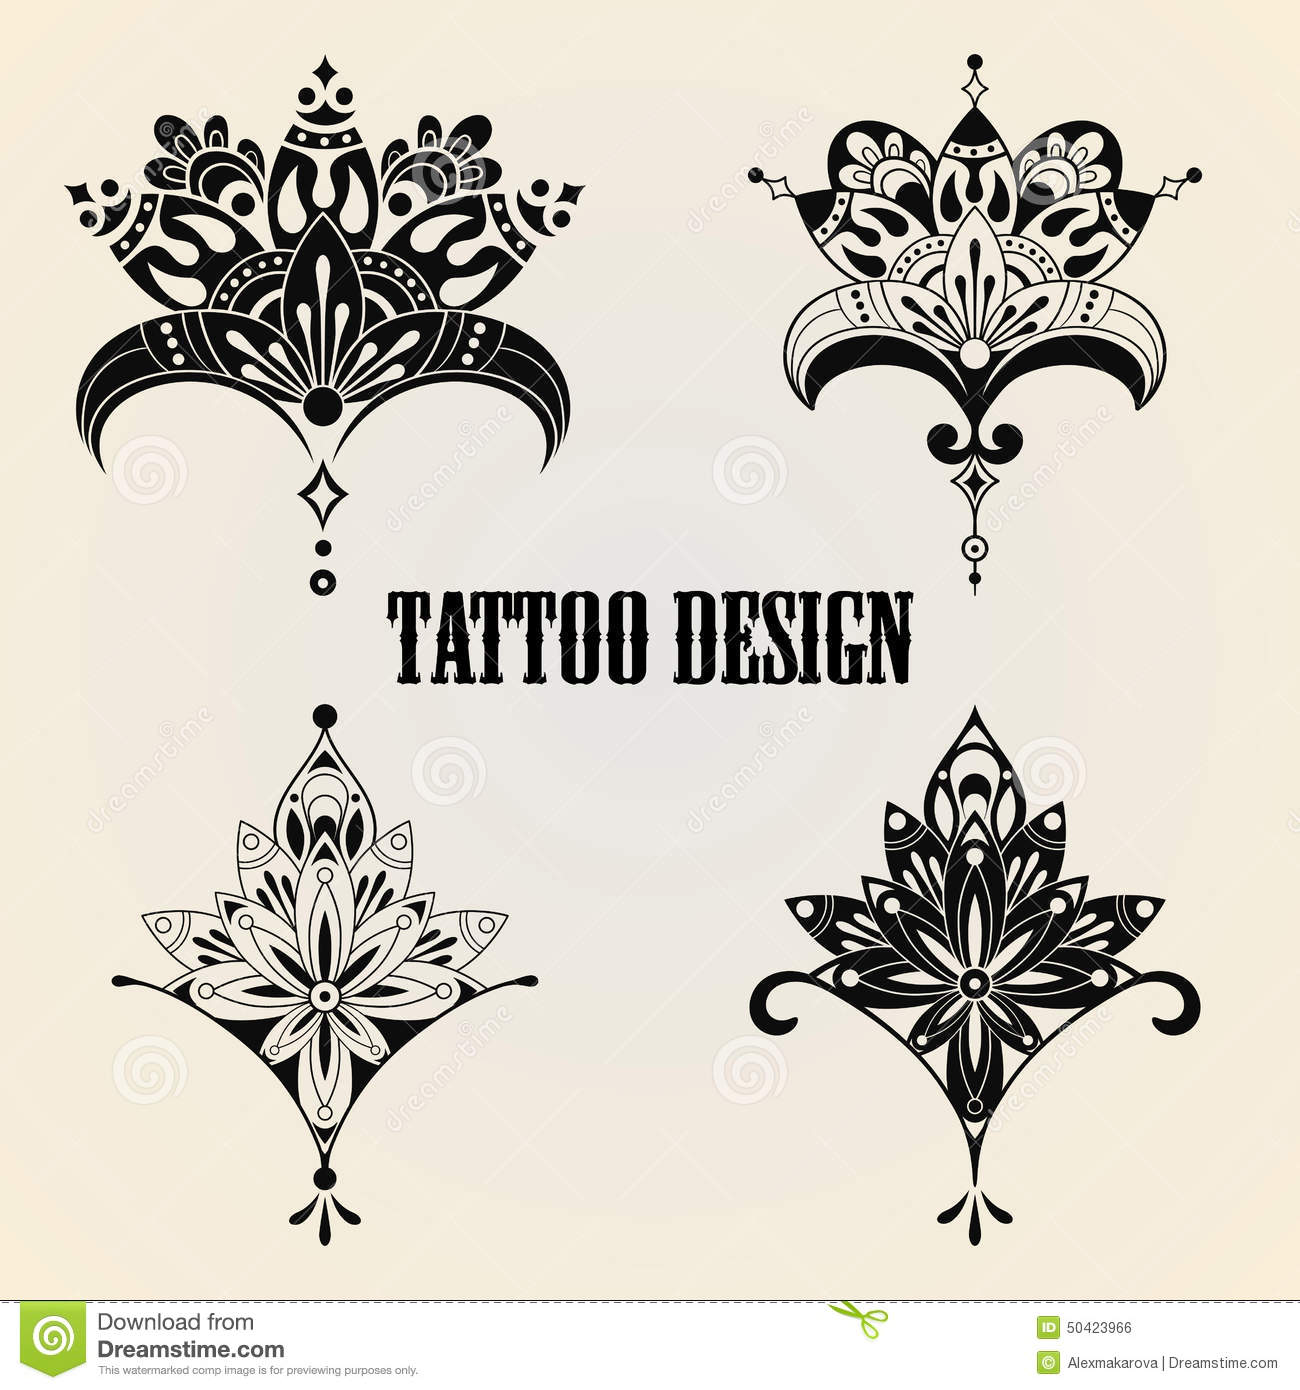 L ments de conception de tatouage illustration de vecteur image 50423966 - Tatouage 4 elements ...